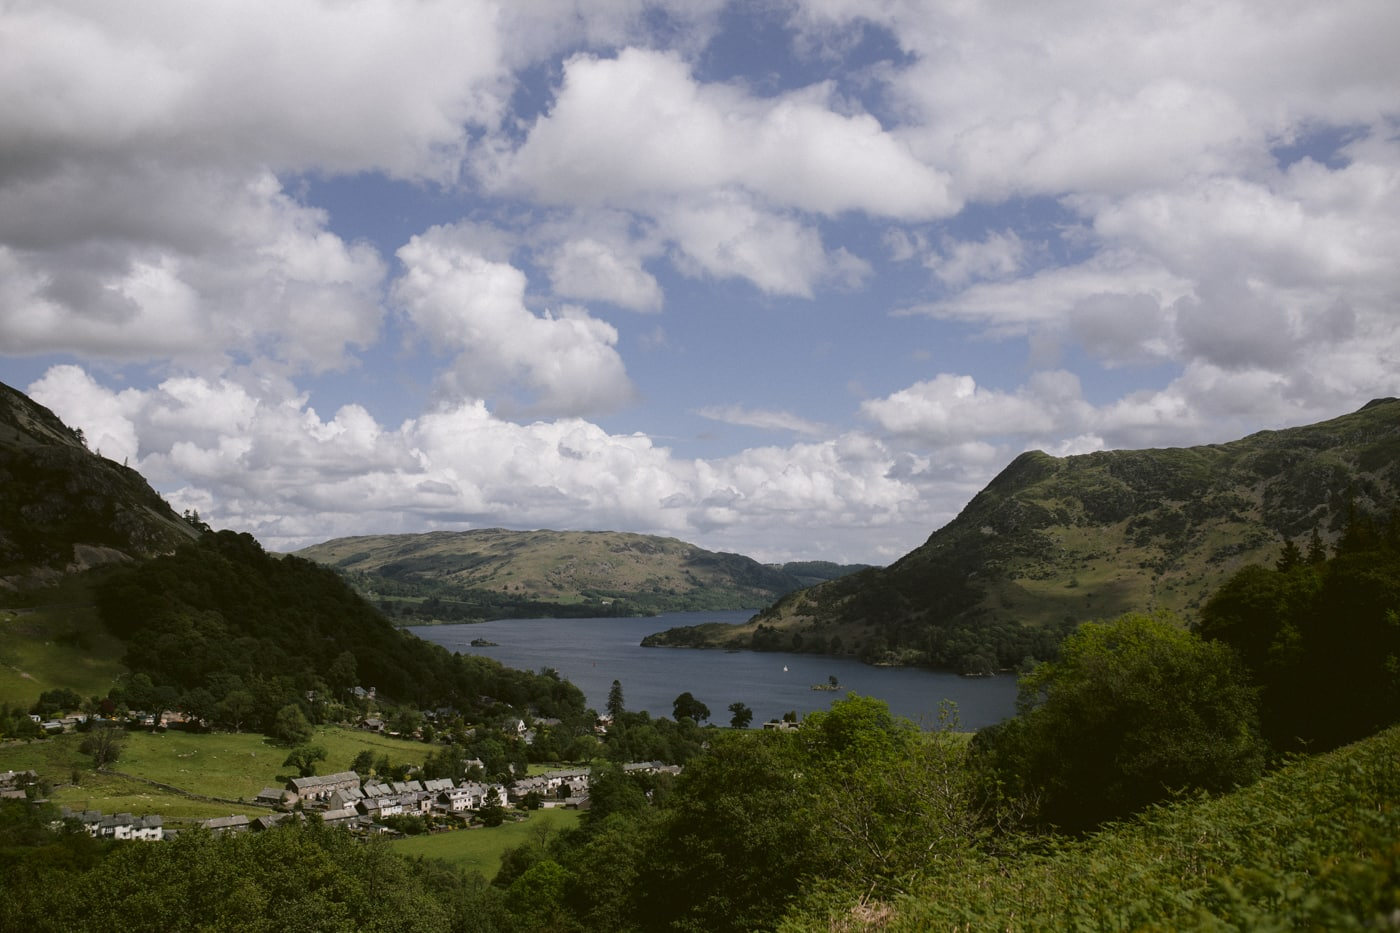 View from up High in the Lakes Portrait Session